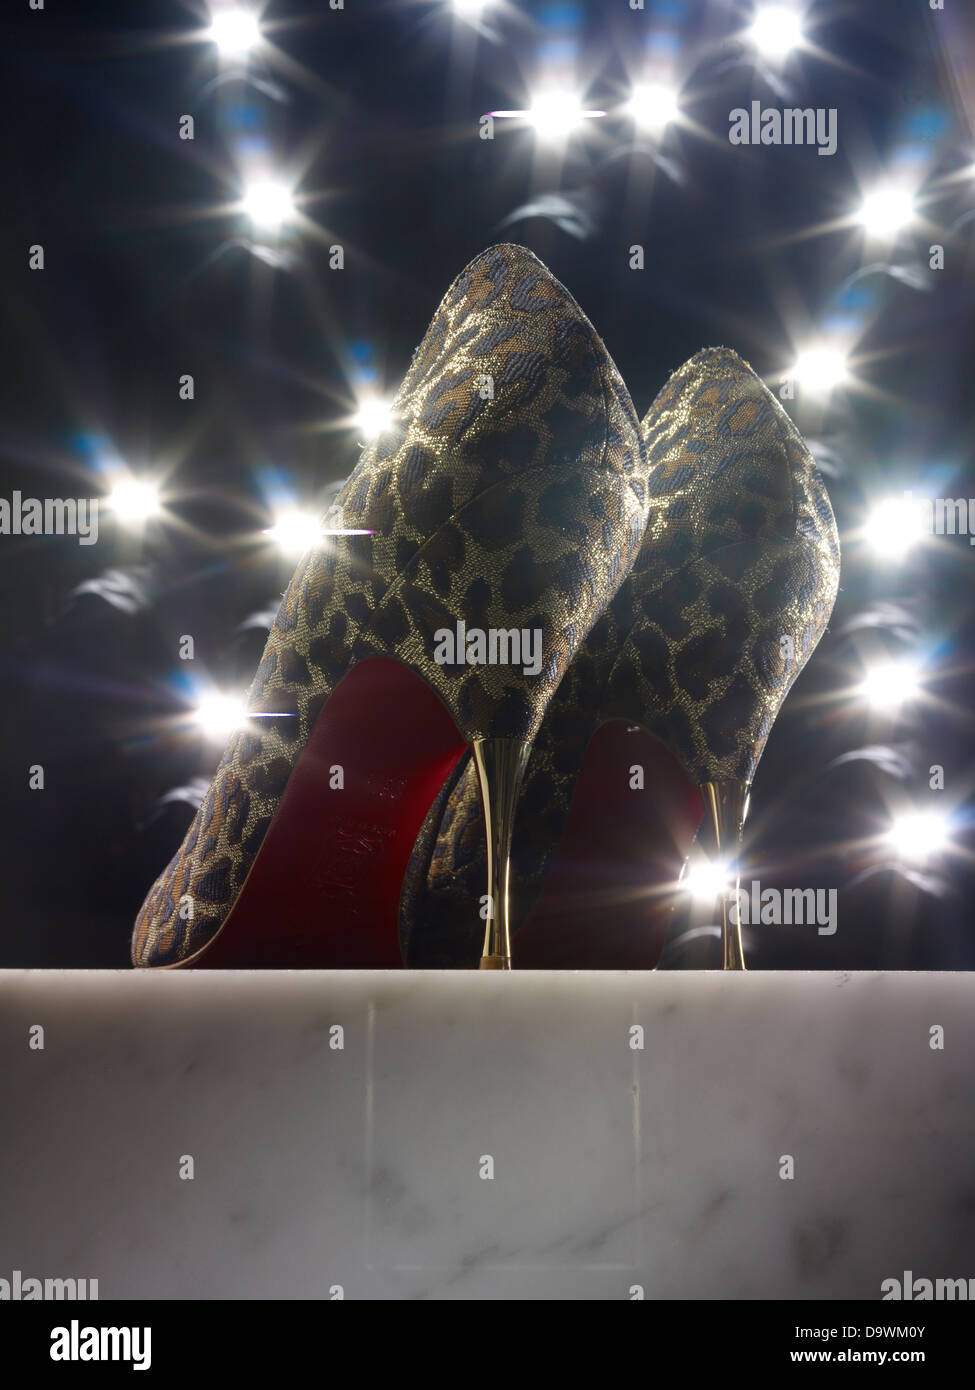 high heels - Stock Image